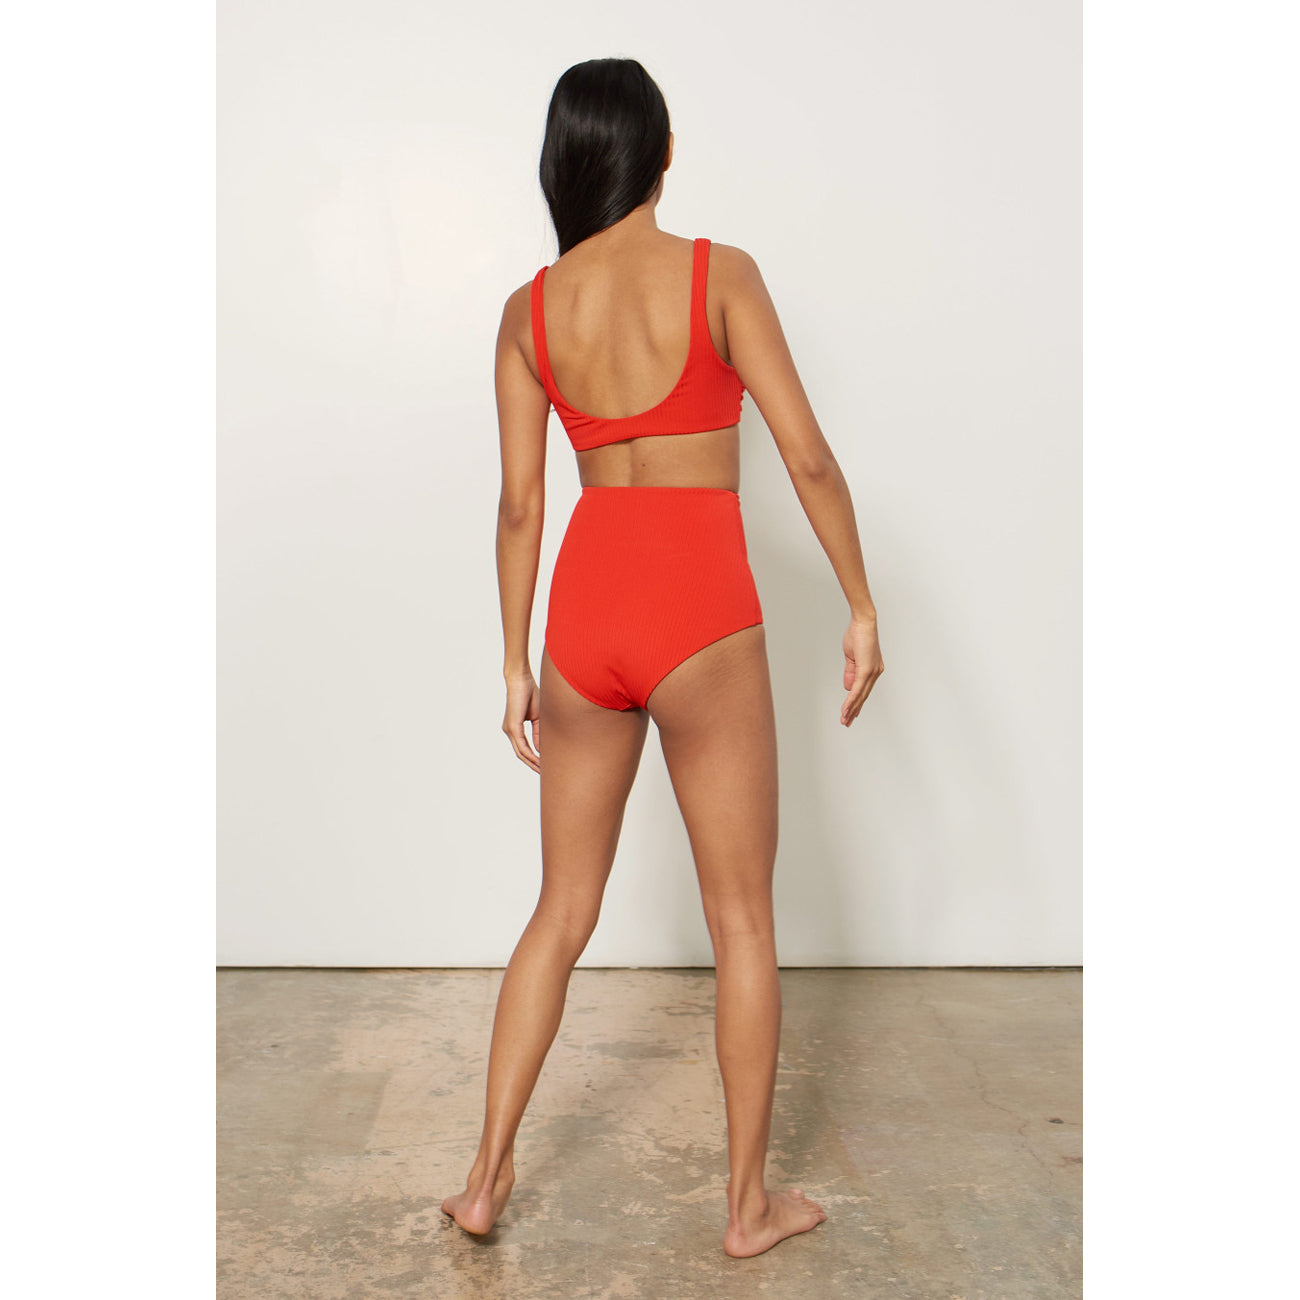 Mara Hoffman Red Rib High Waisted Bikini